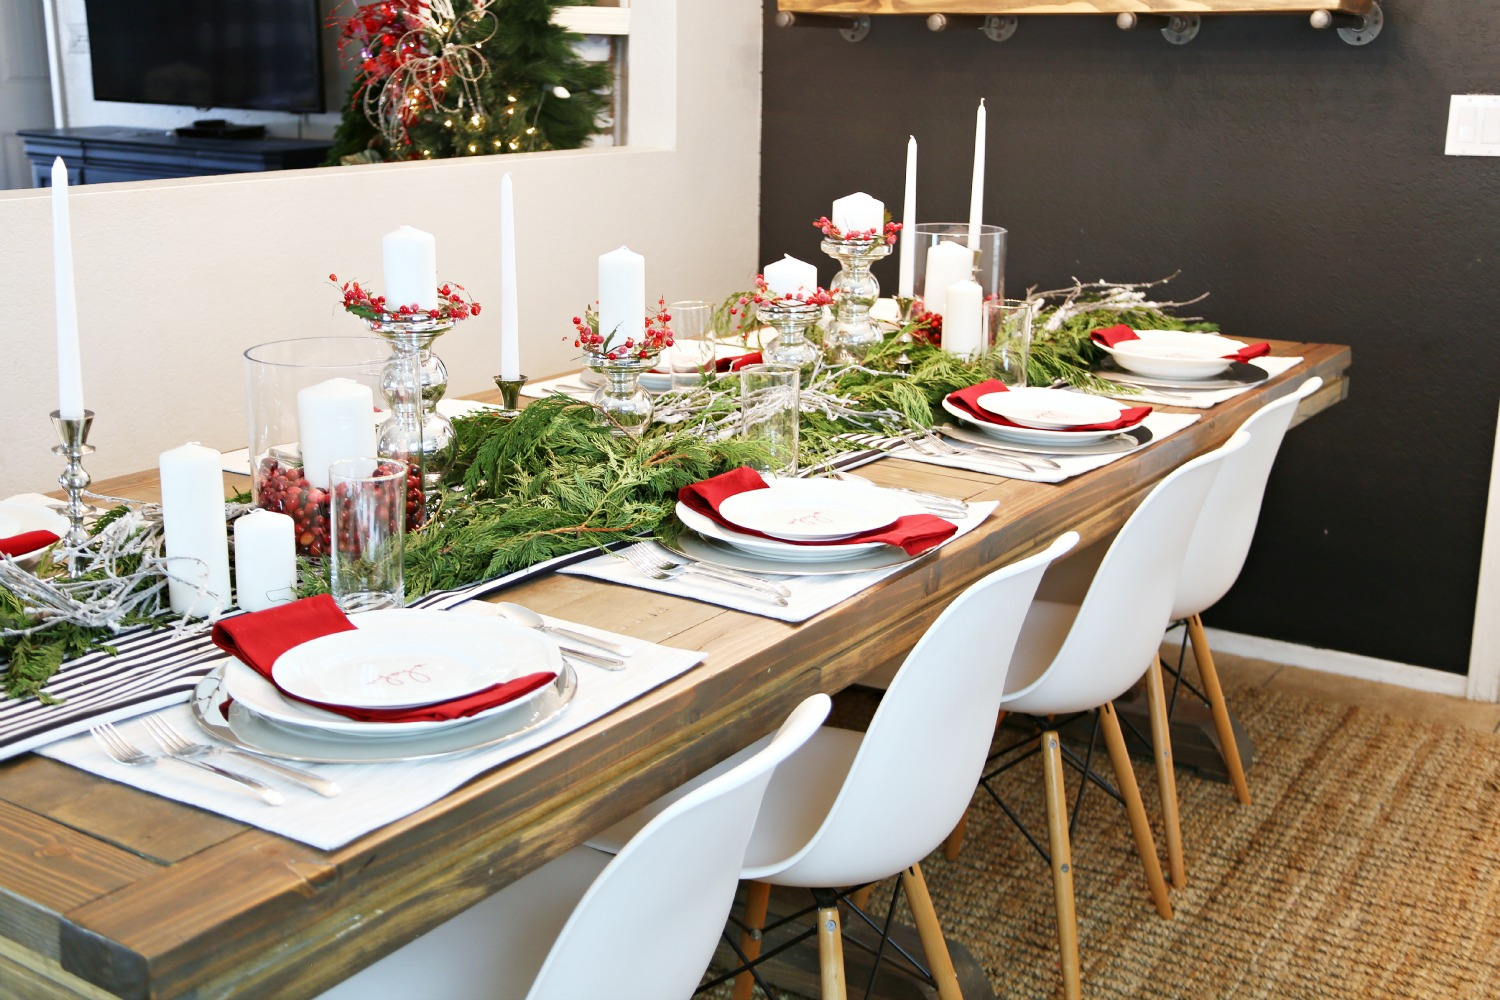 IMG_8379 & Festive Tablescape for a Holiday Dinner Party - Classy Clutter